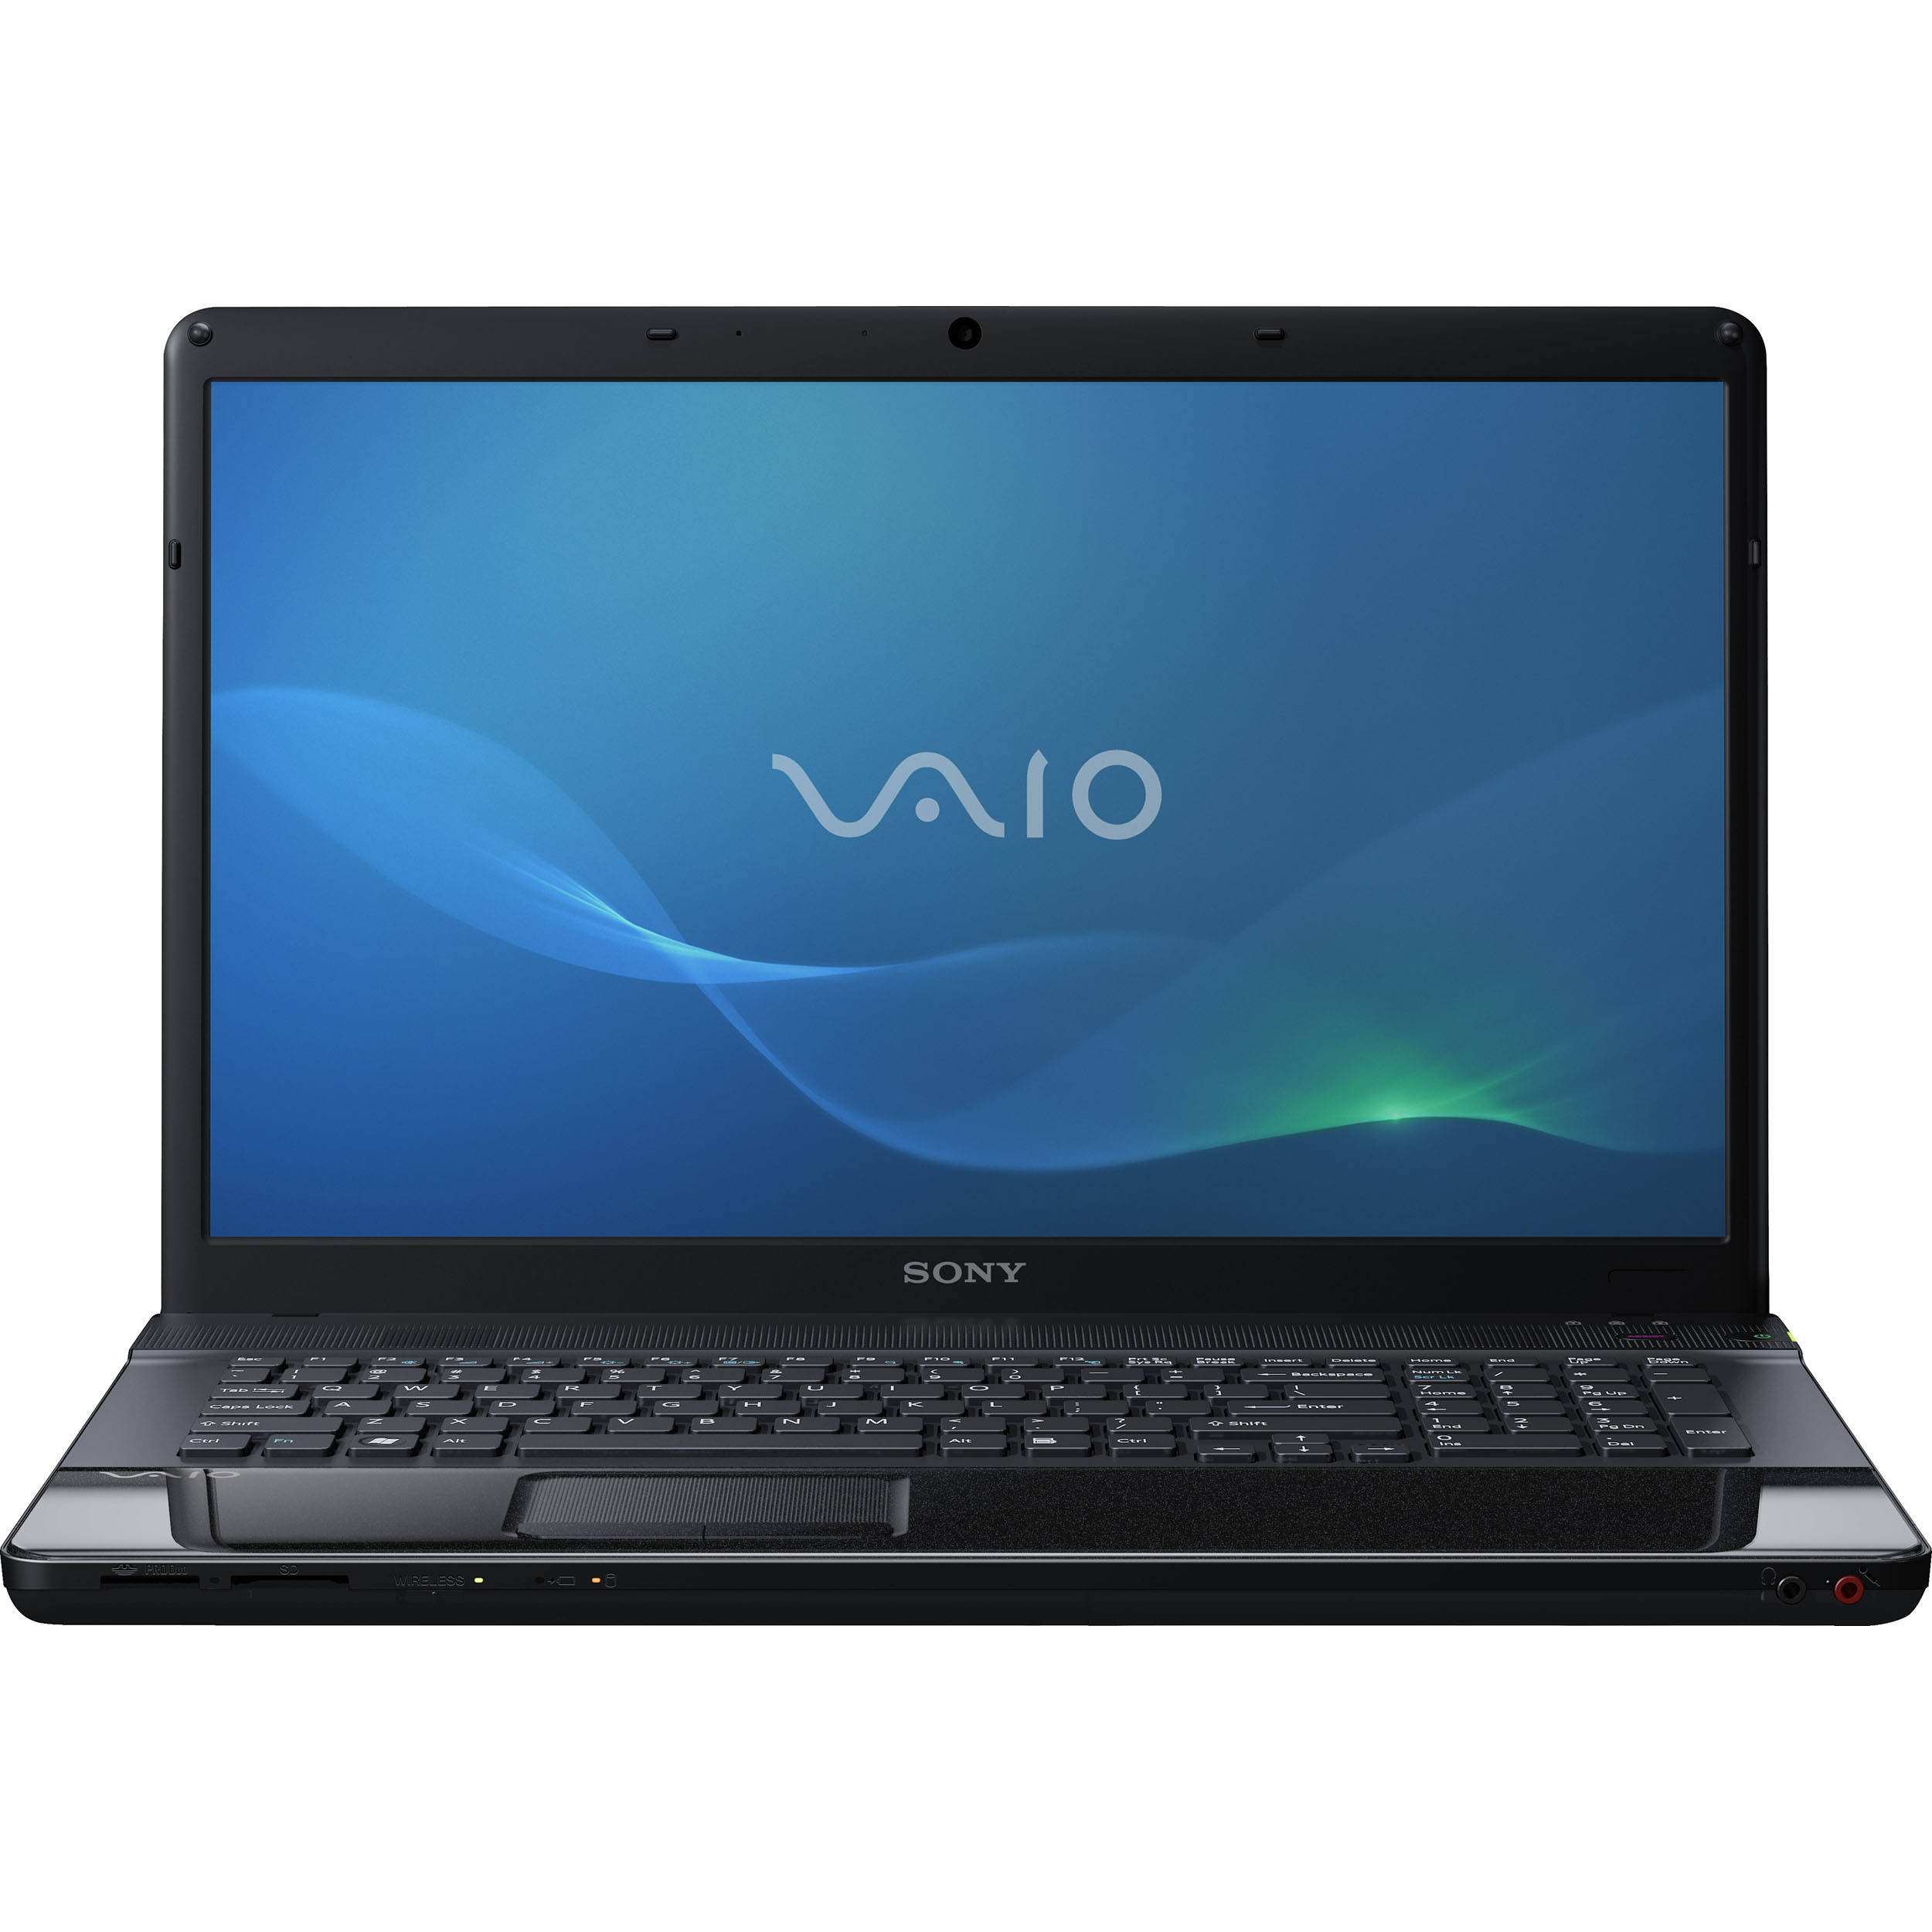 Sony Vaio VPCEF22FX/BIC ATI Mobility Radeon HD Graphics Drivers for Windows XP